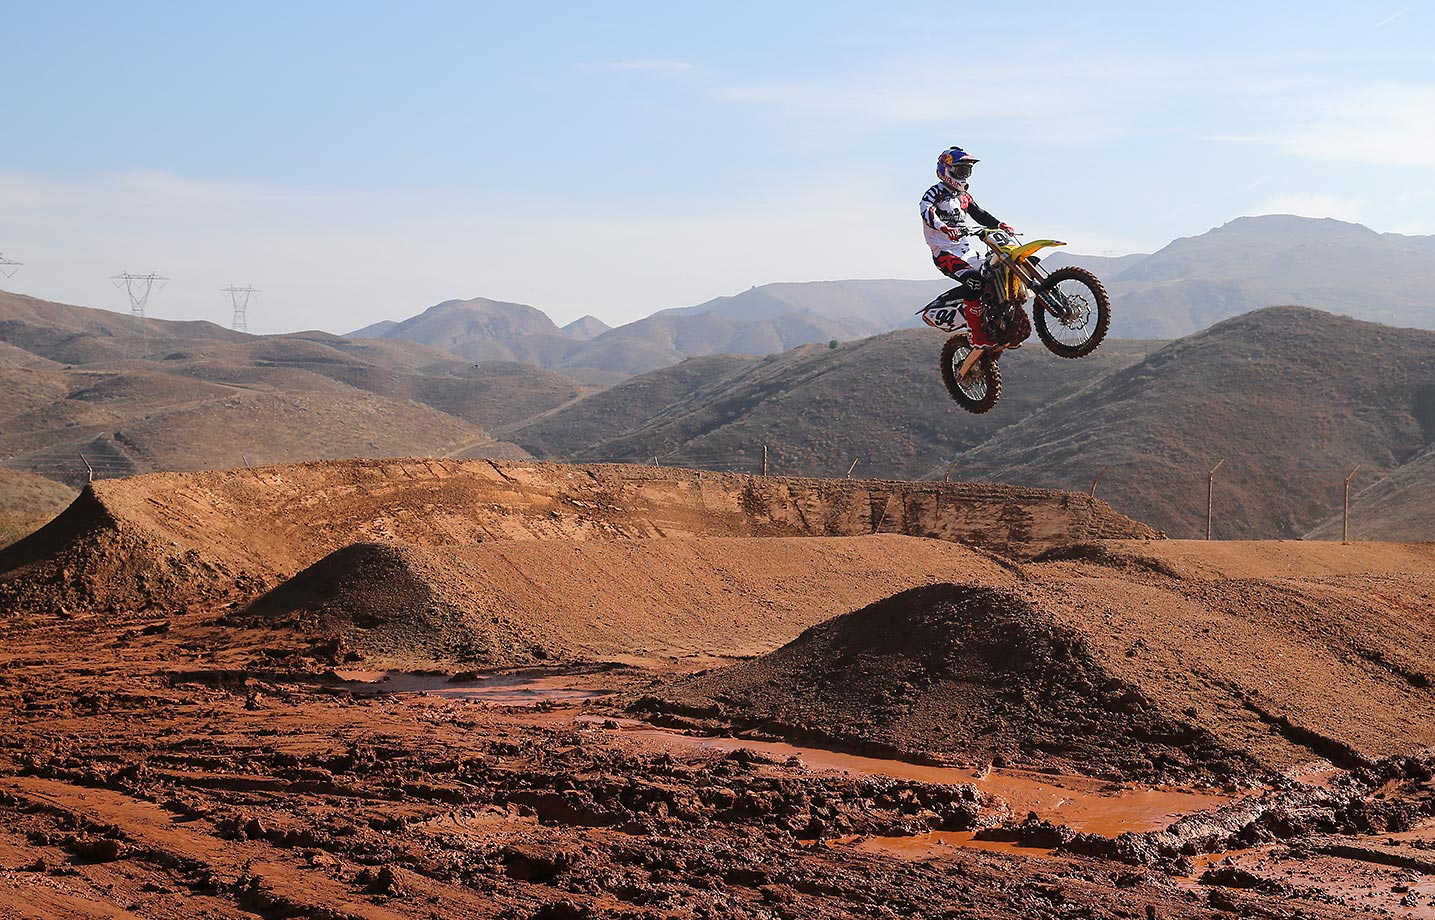 Ken Roczen gets some air on the 'whoops' section of the training facility.